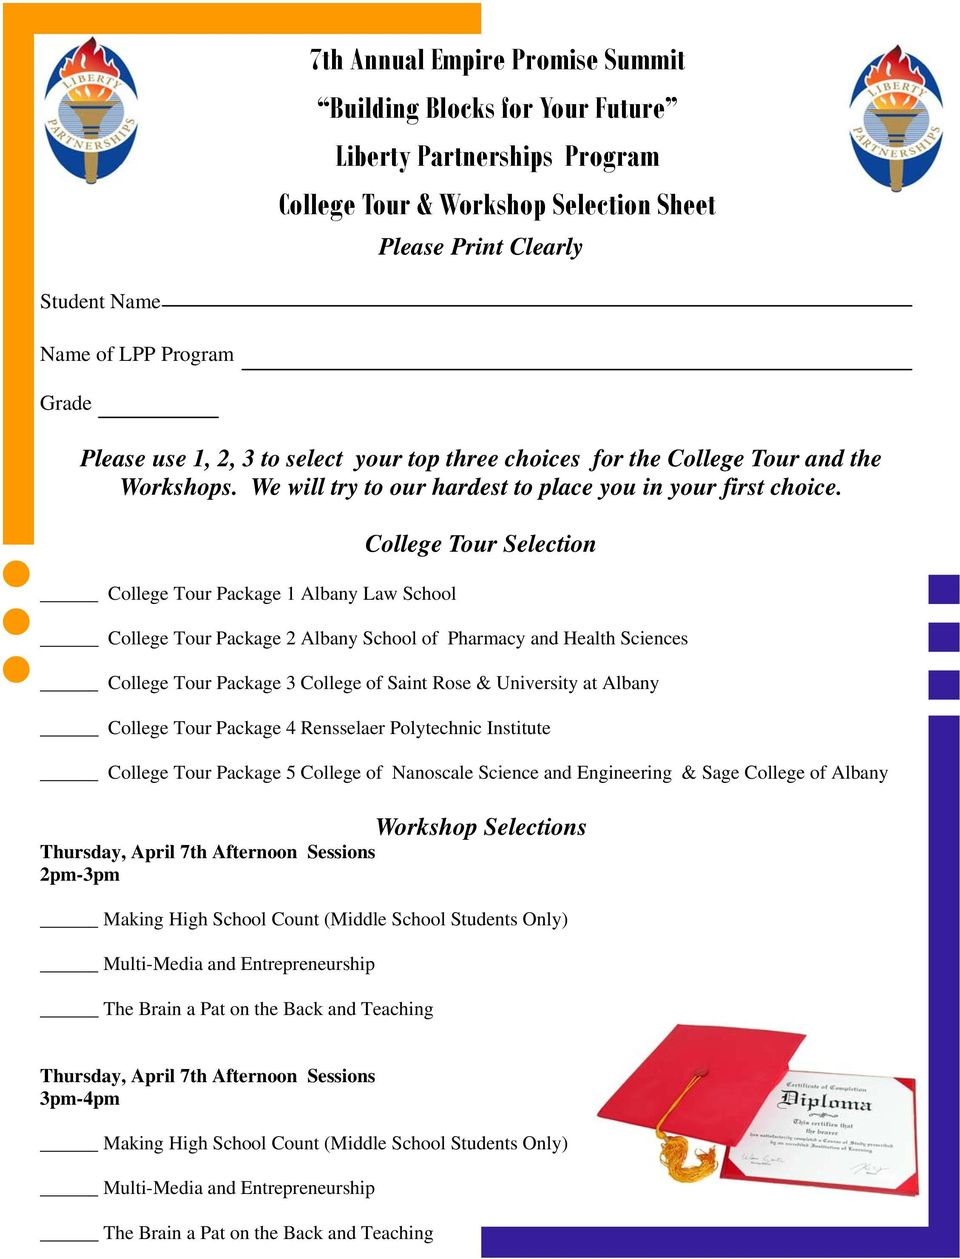 College Tour Package 1 Albany Law School College Tour Selection College Tour Package 2 Albany School of Pharmacy and Health Sciences College Tour Package 3 College of Saint Rose & University at